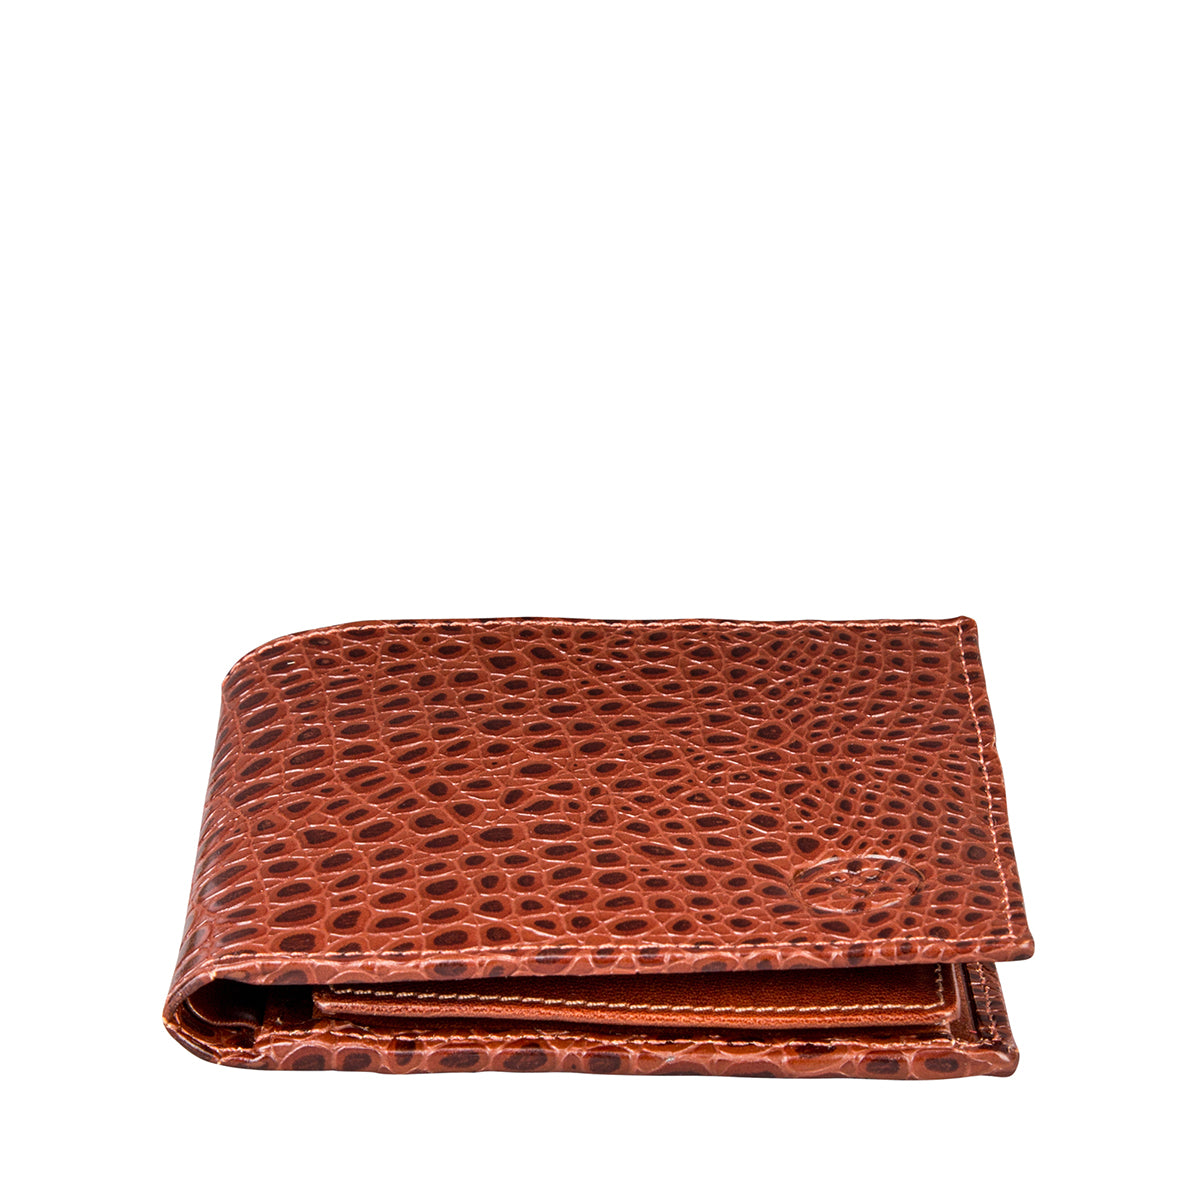 Image 3 of the 'Ticciano' Mock Croc Chestnut Veg-Tanned Leather Wallet with Coin Pocket